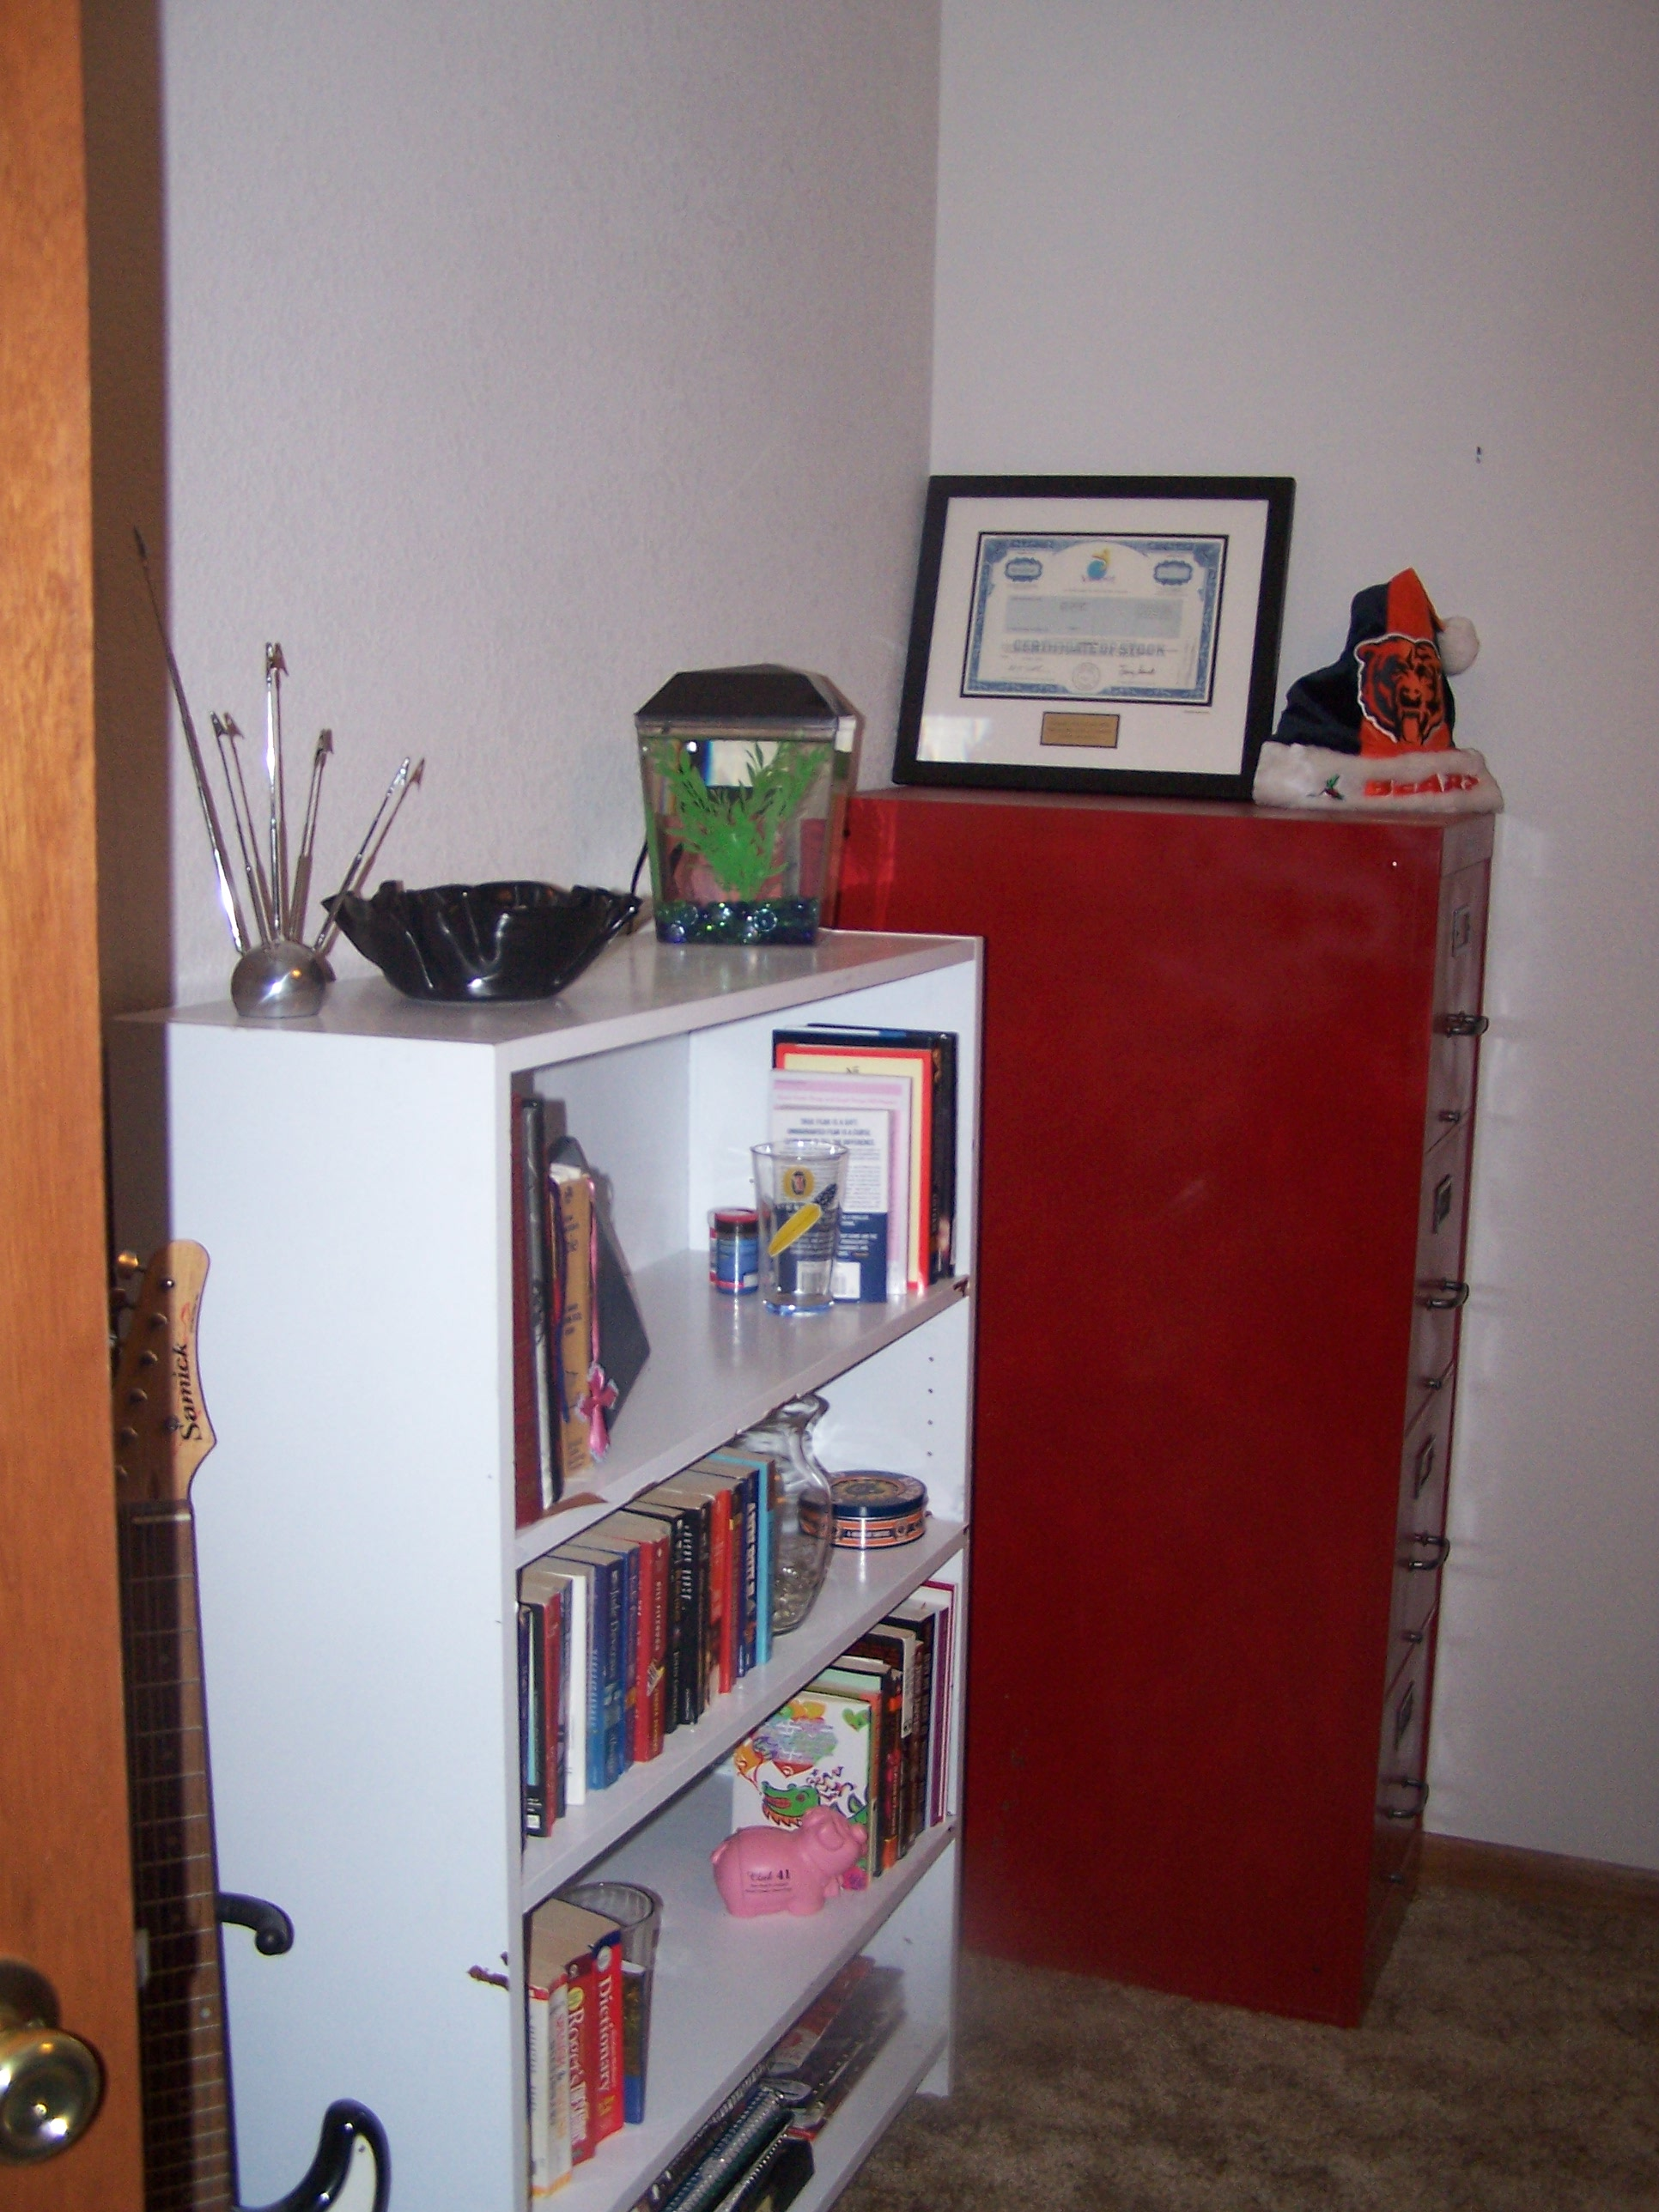 A close up of the bookshelves and our fish Van Halen.